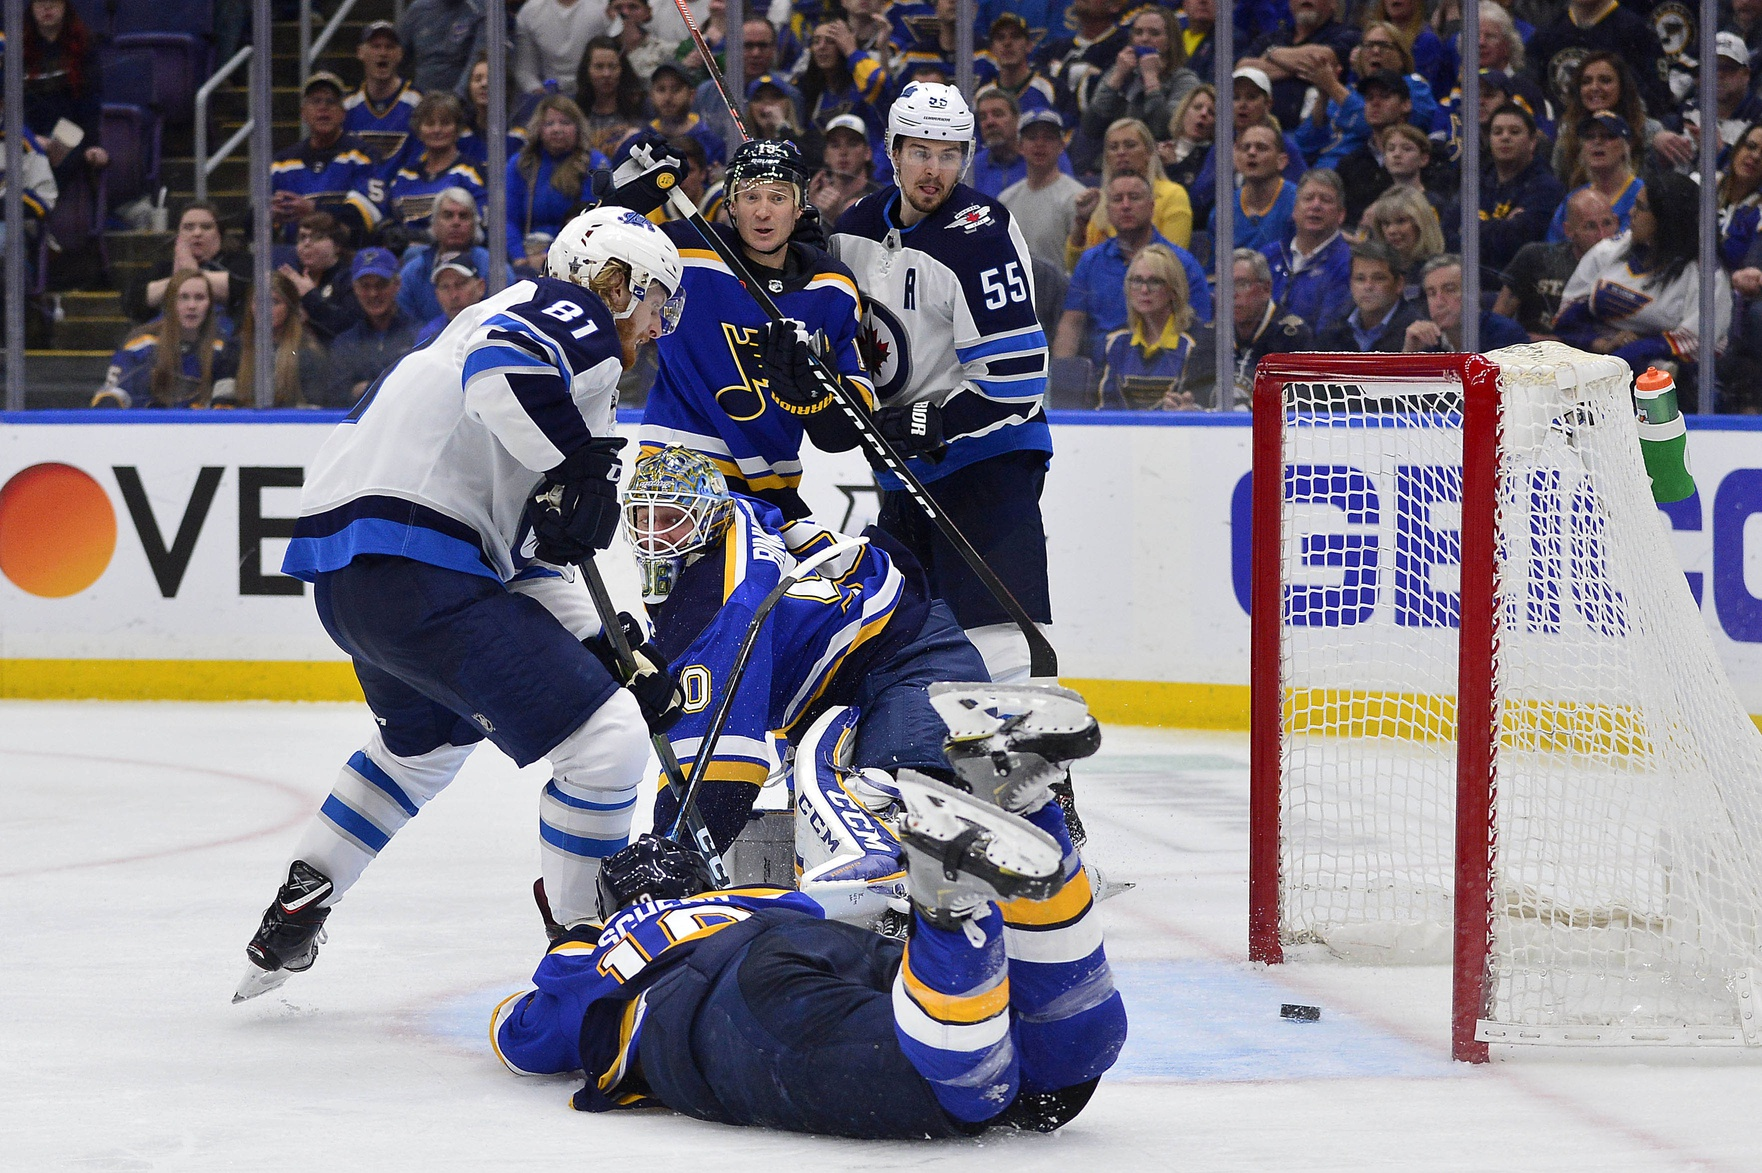 The Blues need to unlearn all of the bad habits they developed against the Jets